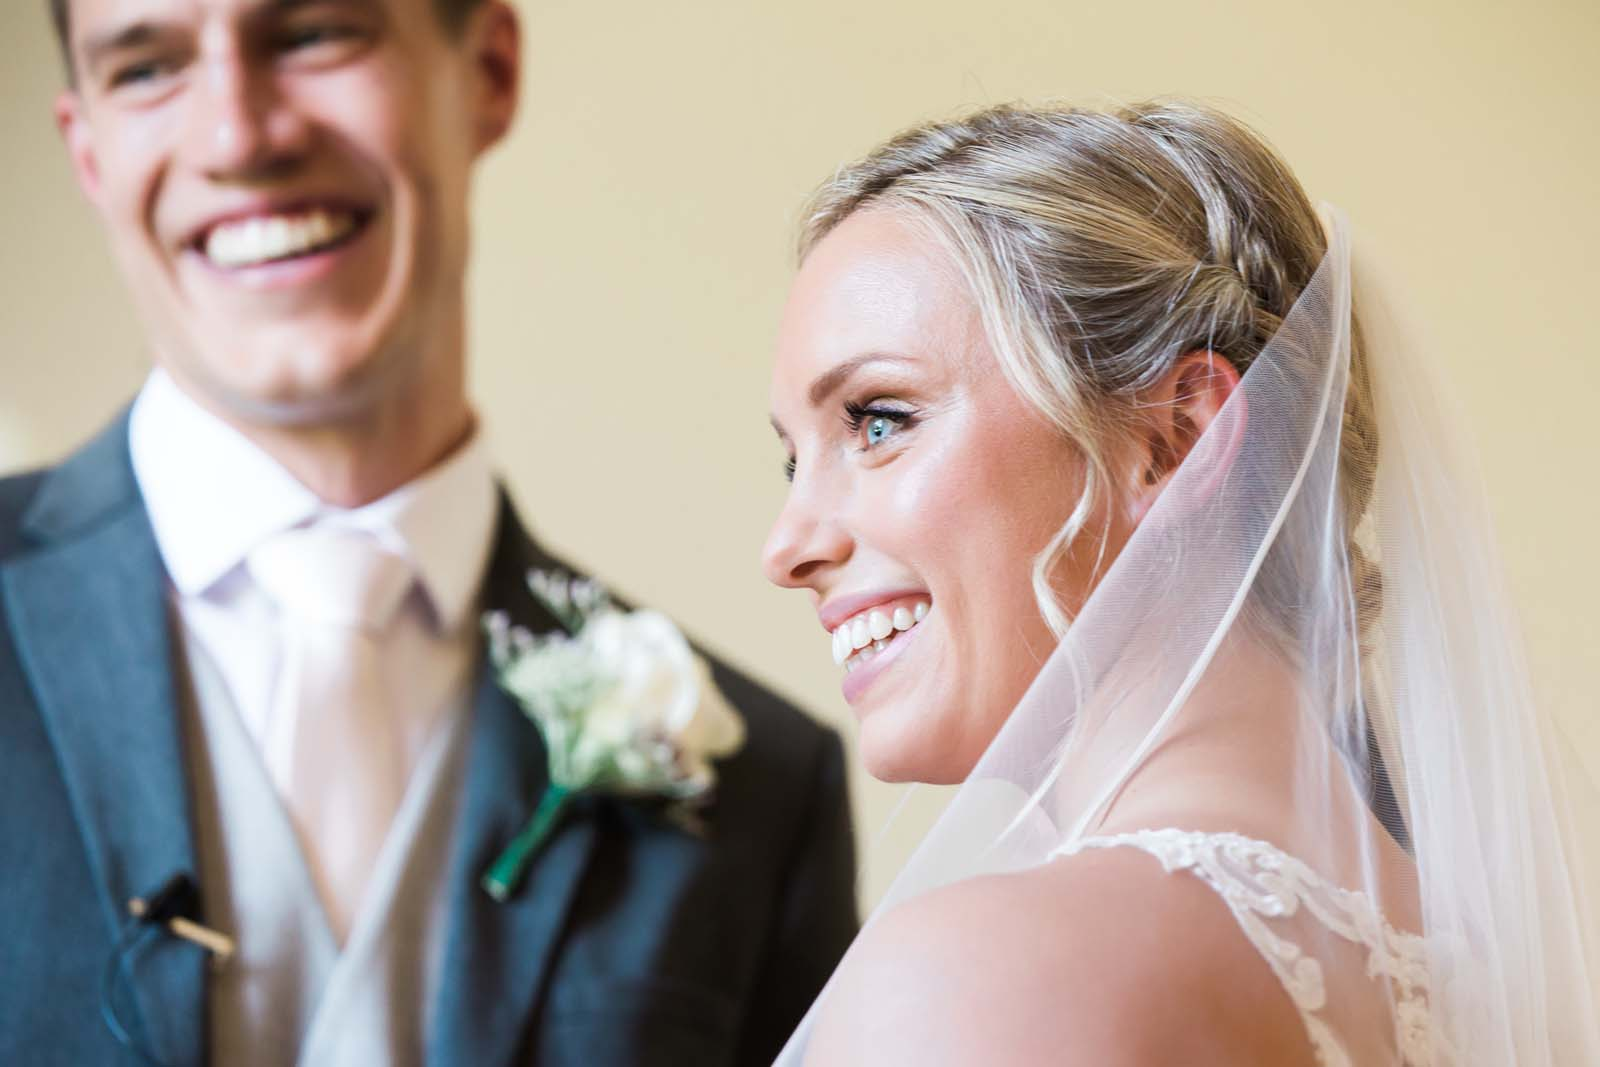 Notley Abbey wedding in Buckinghamshire up close during the ceremony